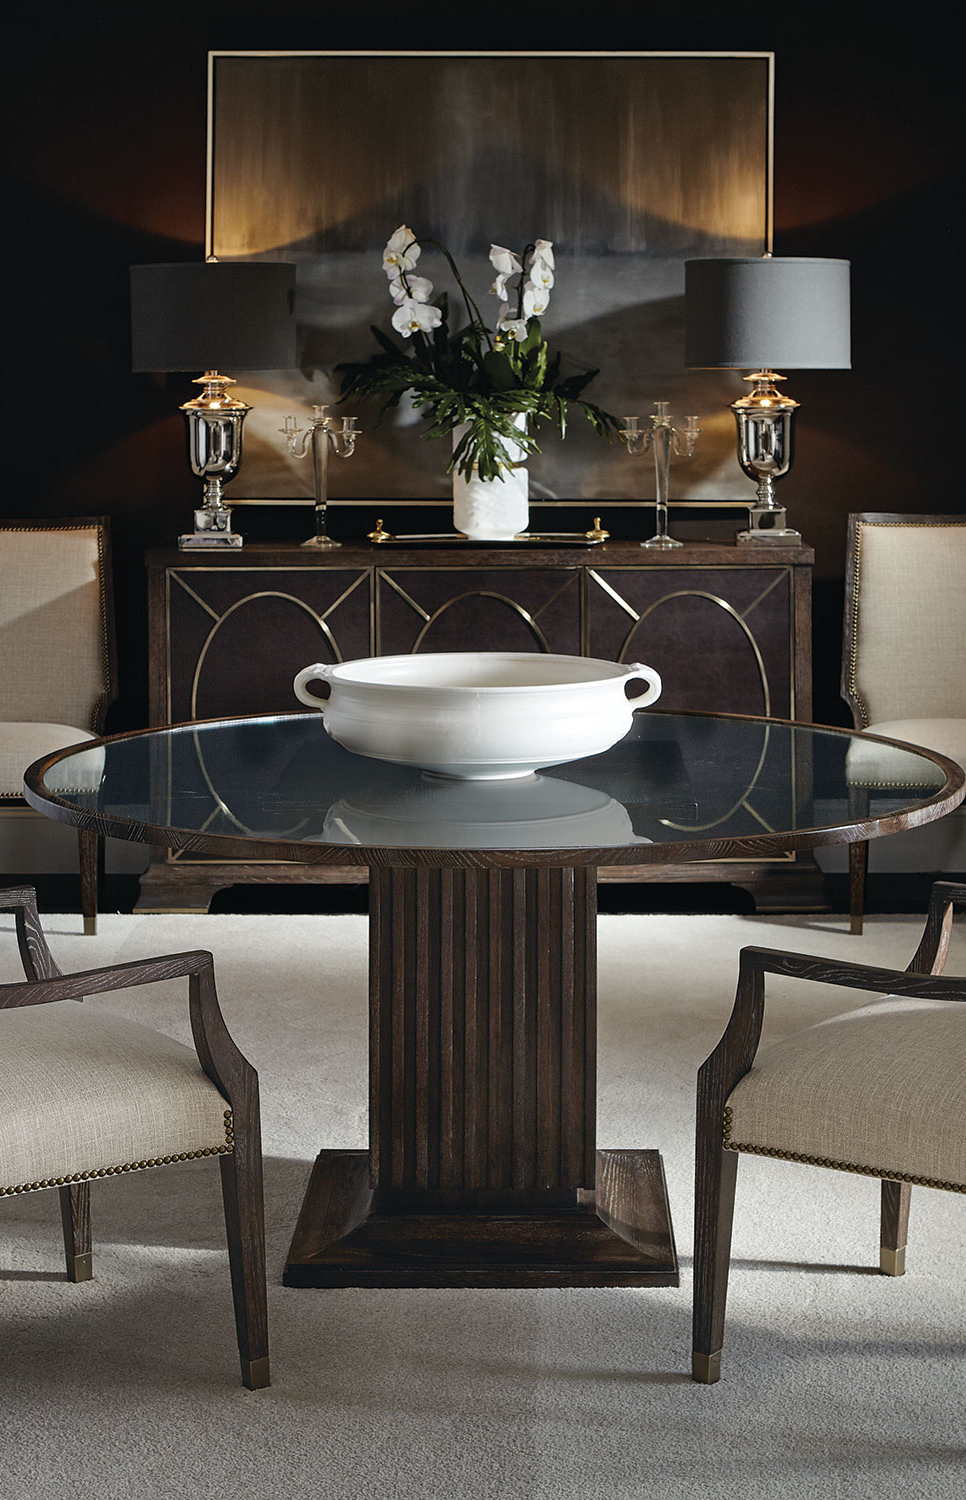 Sophisticated Dining Room Ideas For Your Home Design: Gallery Of Stunning Dining Room Pictures